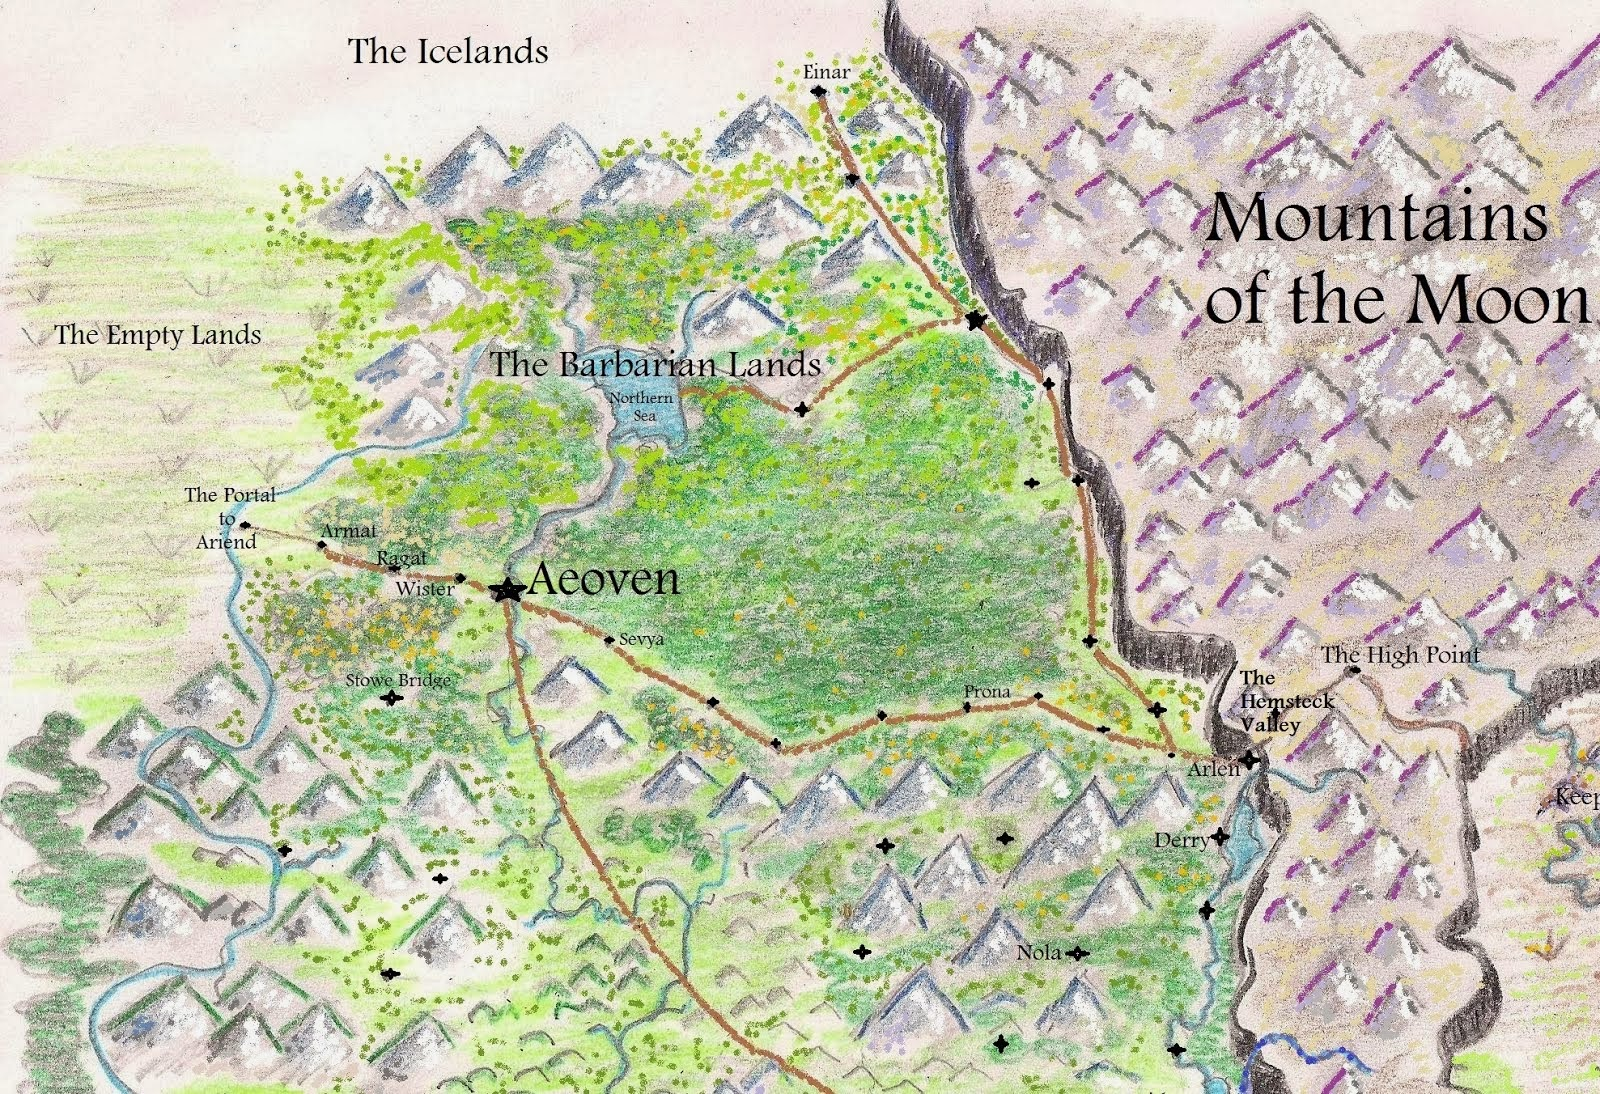 Aeoven and the North